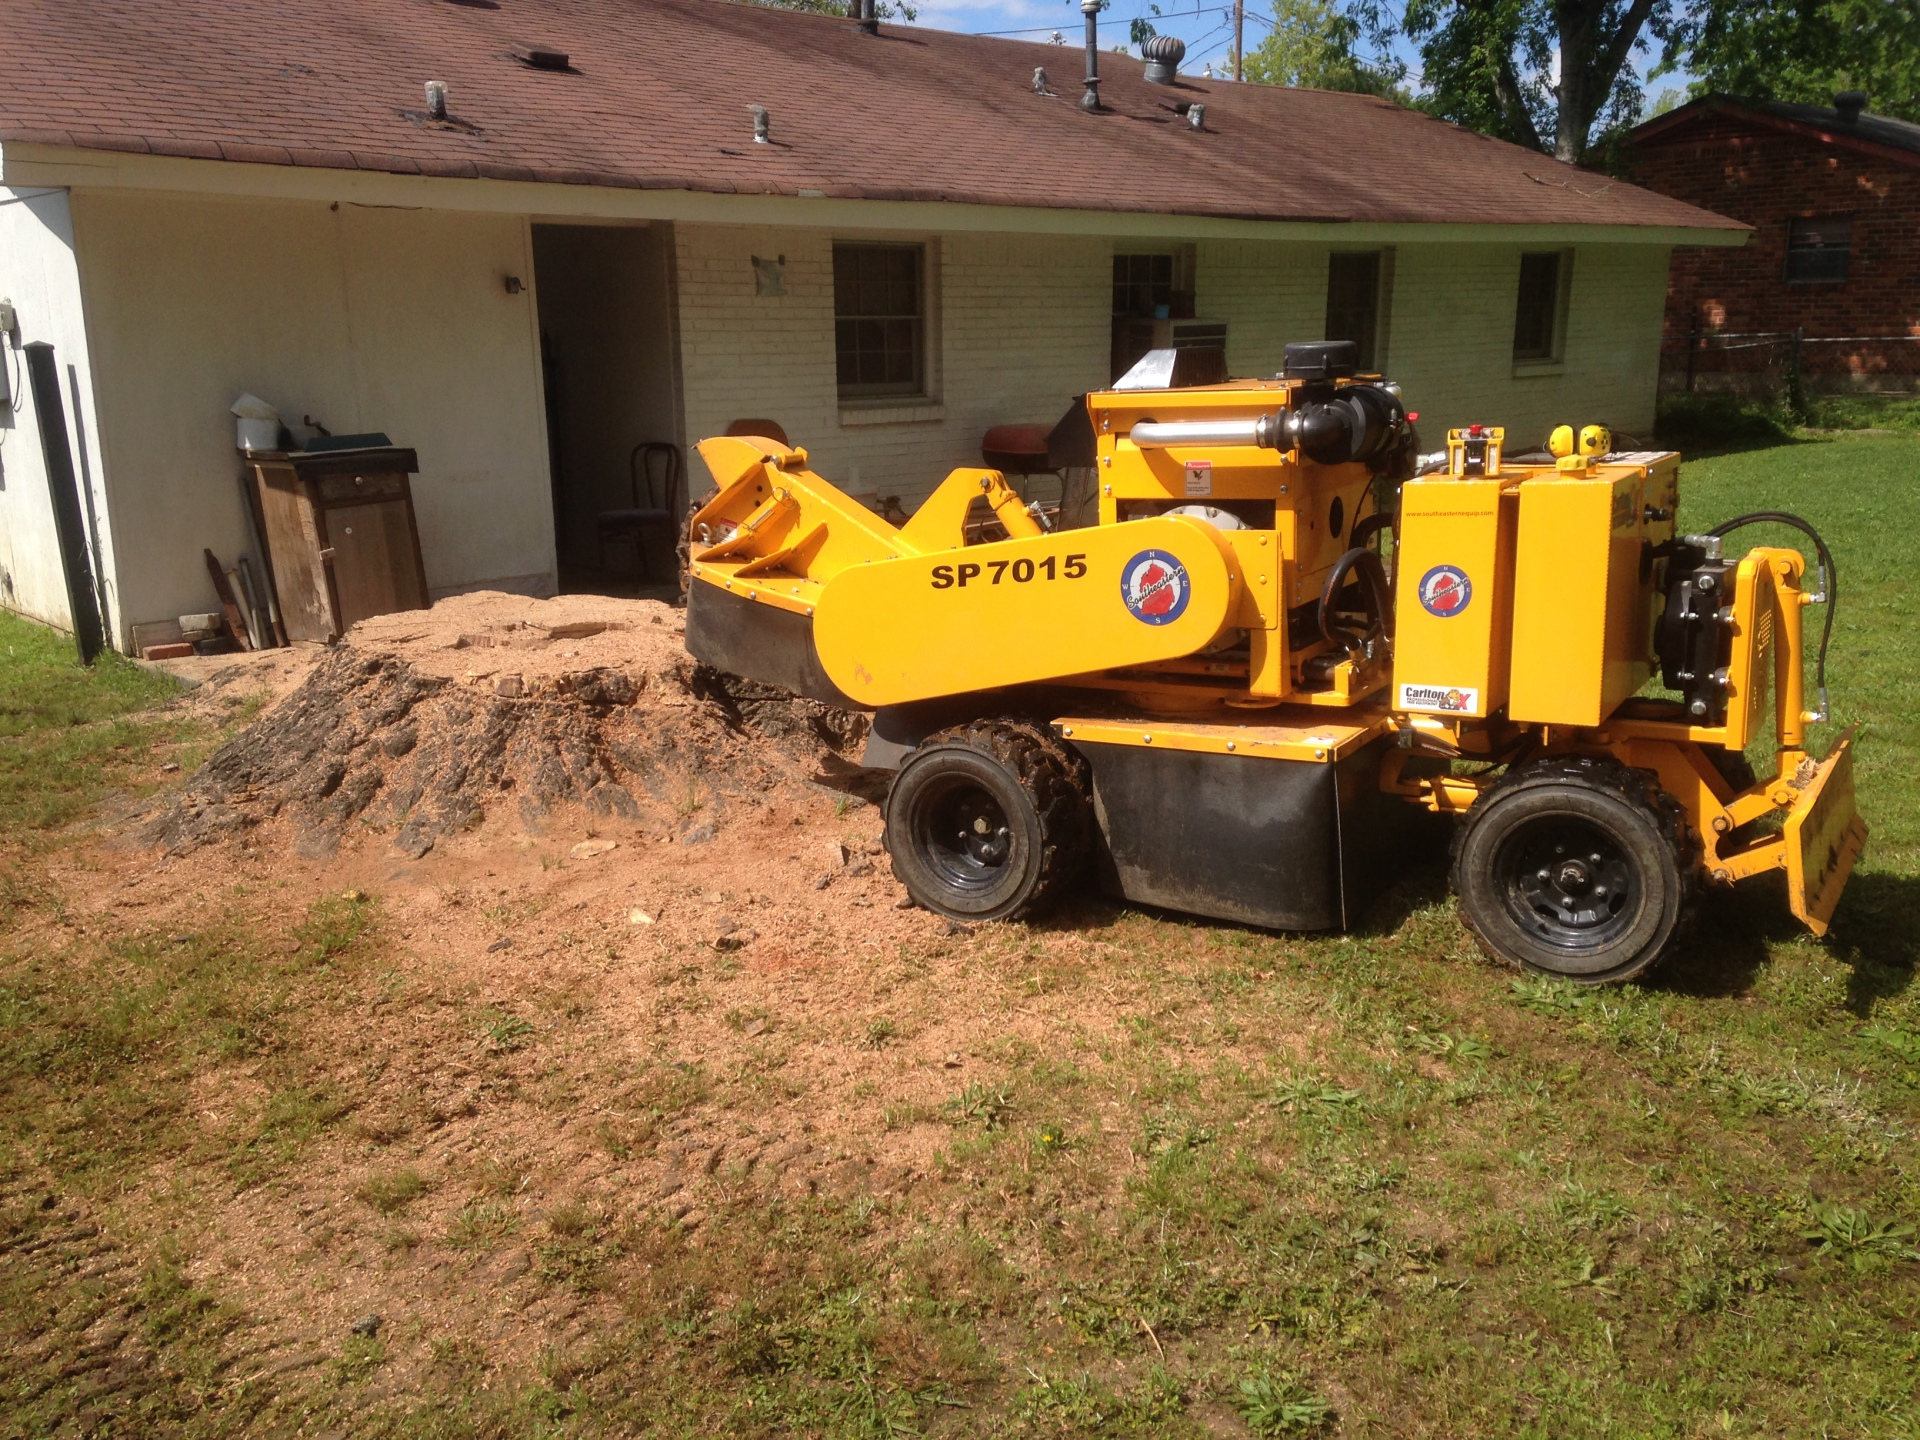 Grinding a giant stump in Tuskegee